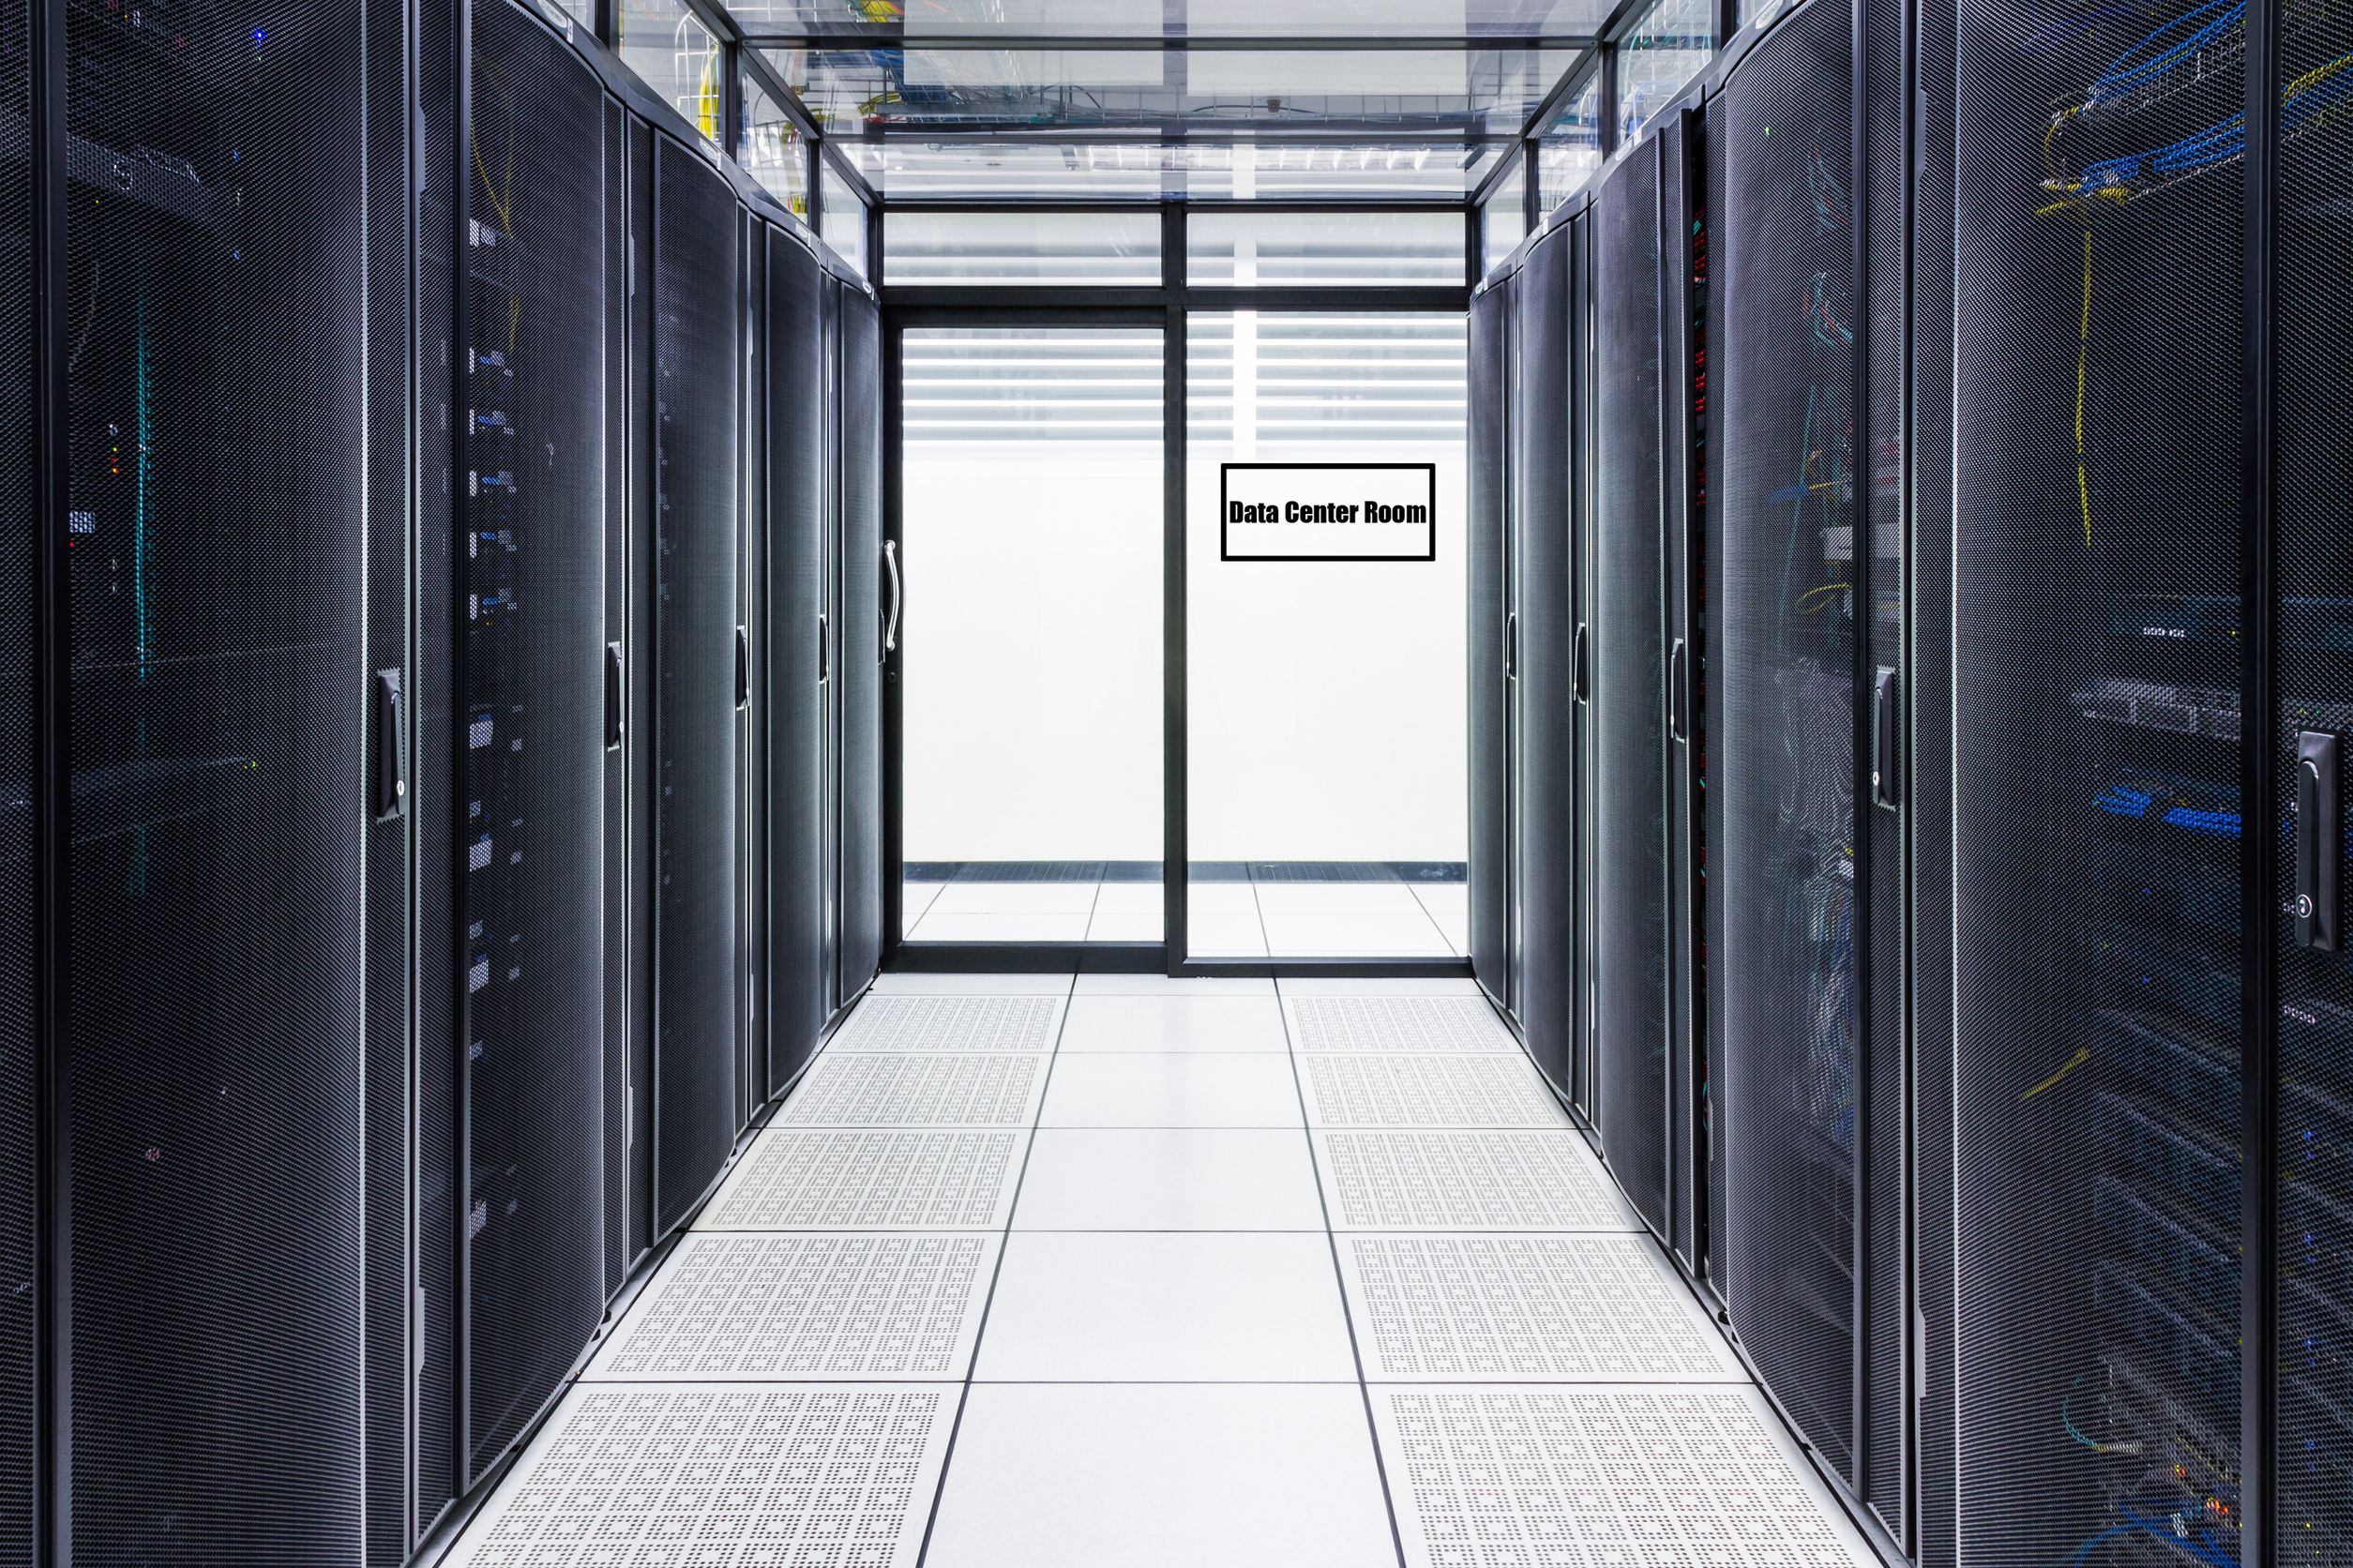 software-defined-data-center-room.jpg